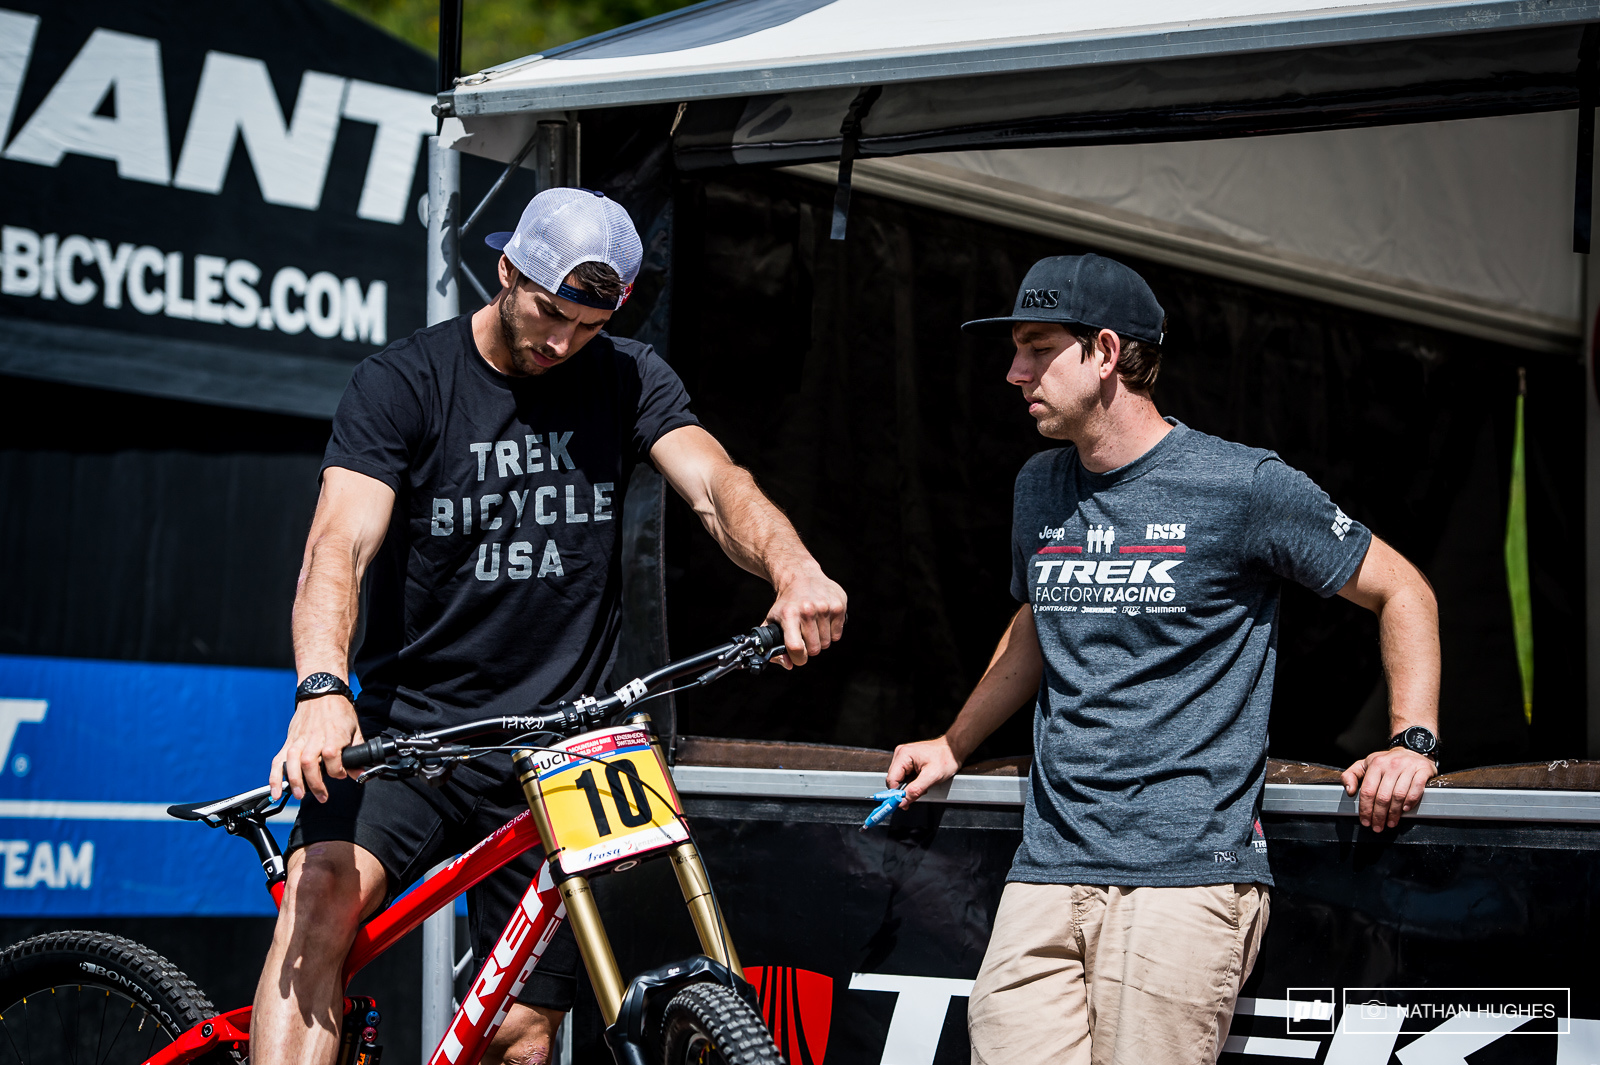 Gee Atherton getting the set-up right with mechanic Polish Pete.